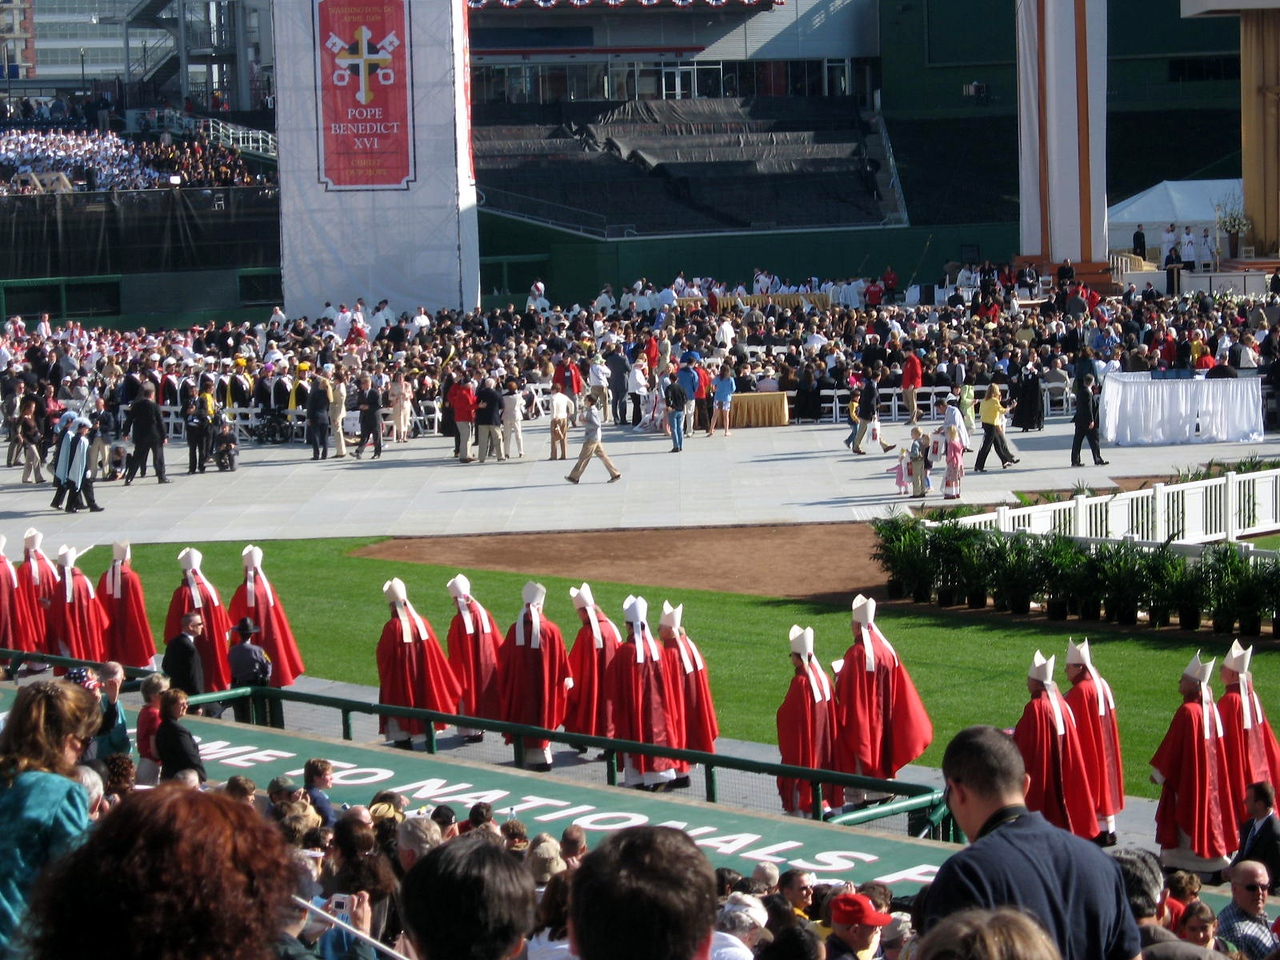 The bishops process onto the field before the Mass